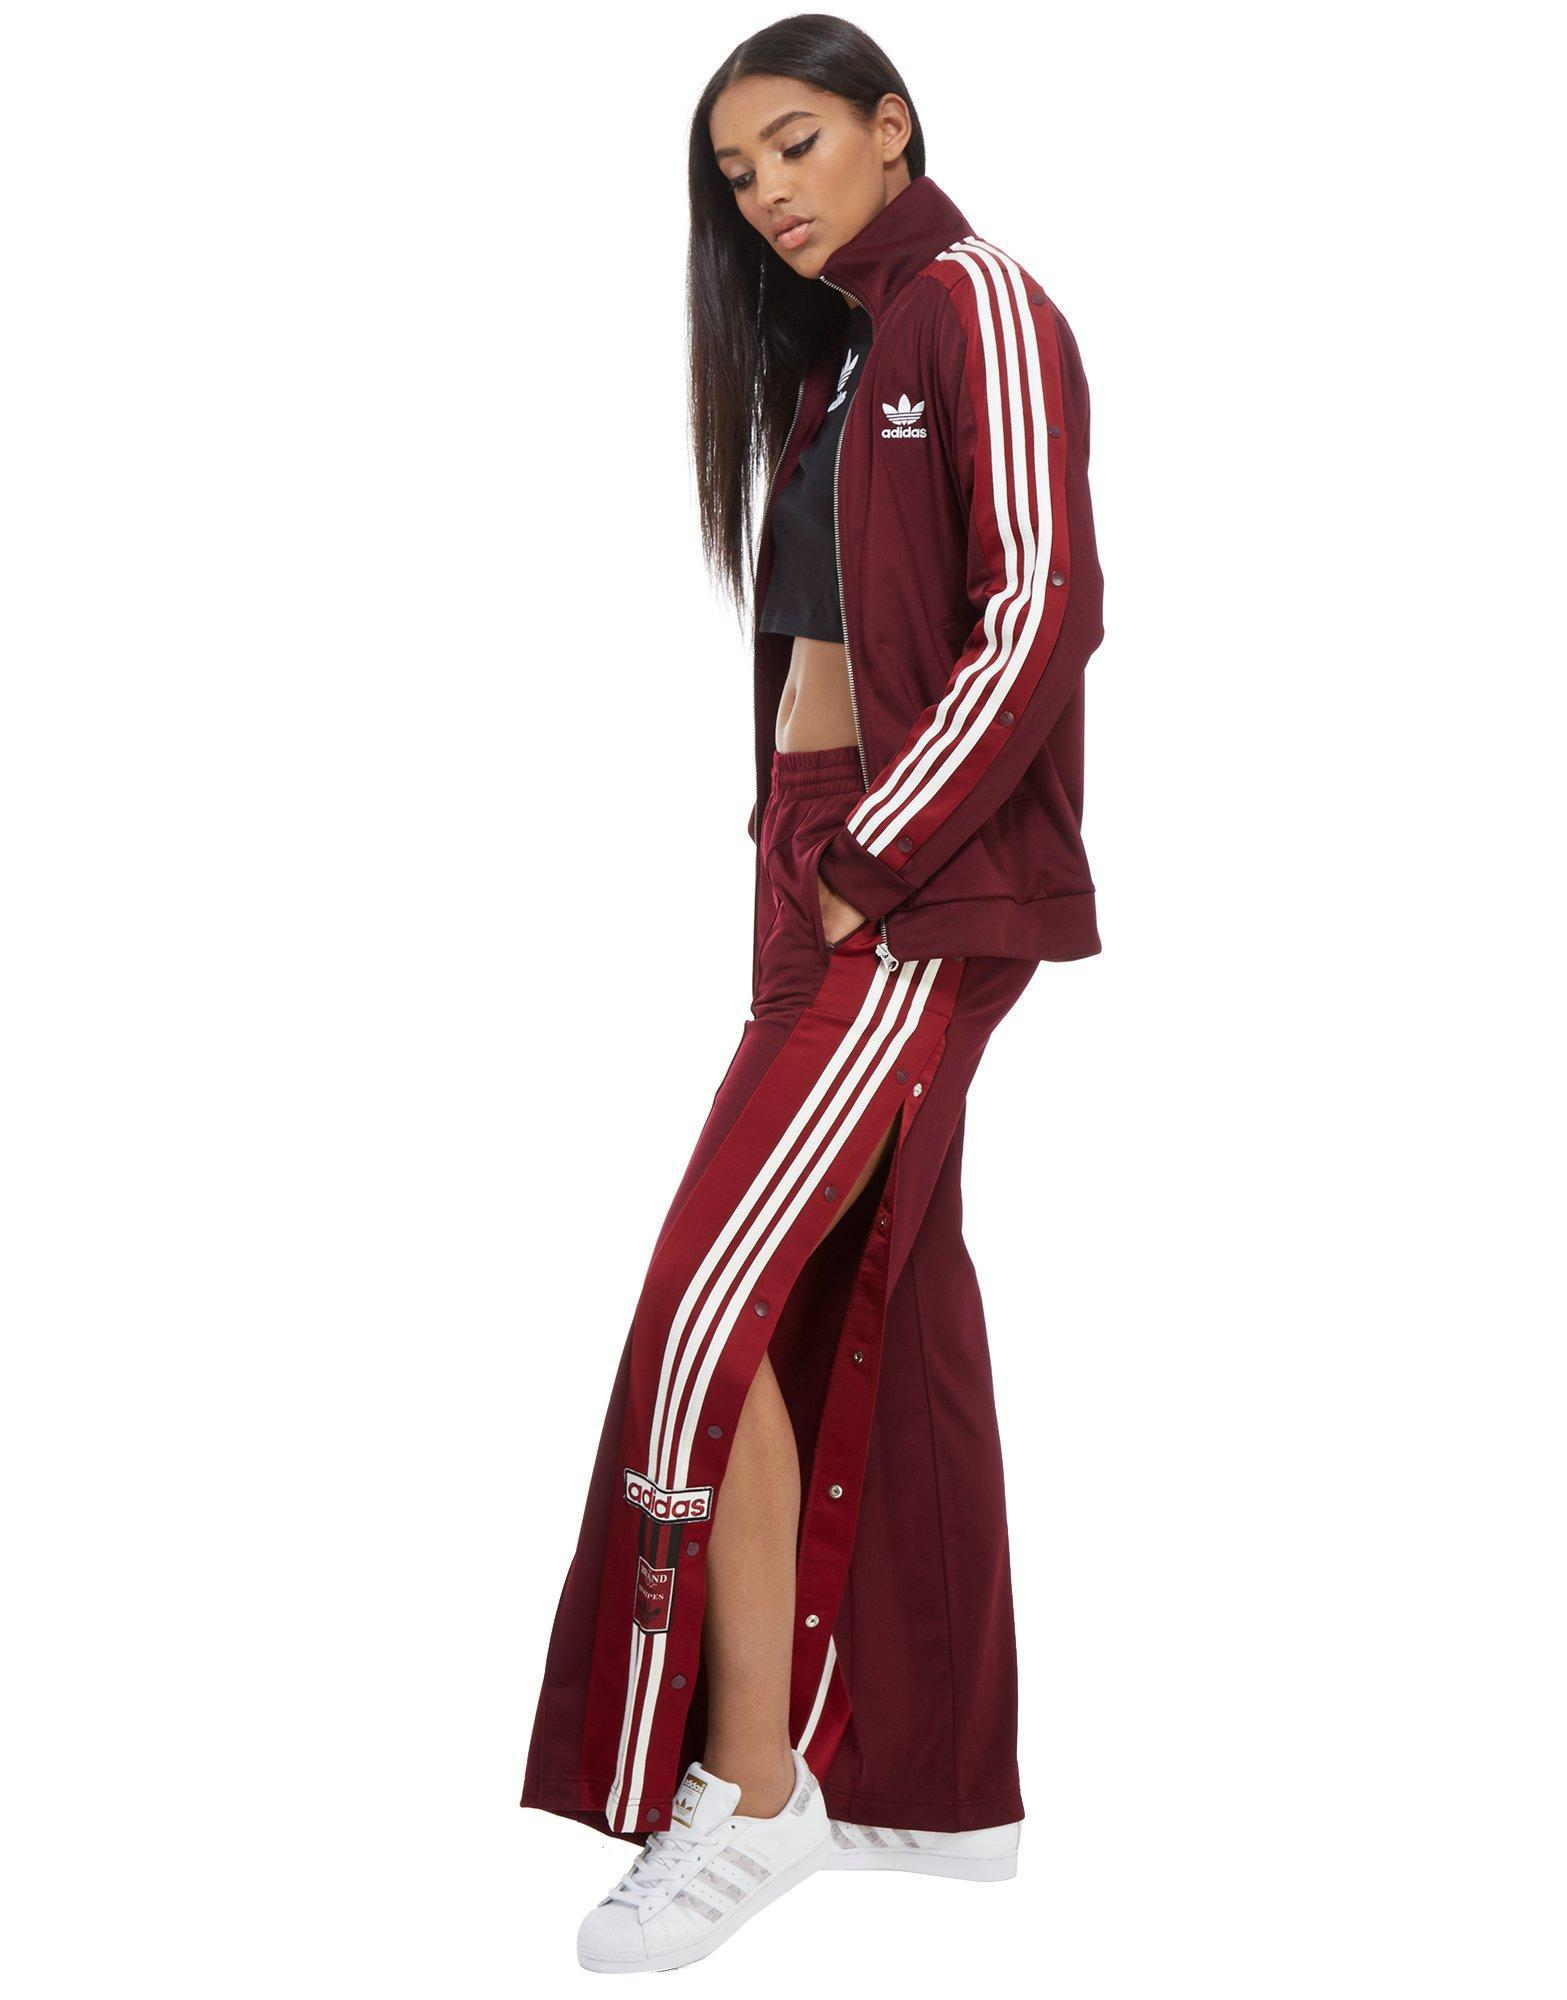 6935968f36a4 adidas Originals Adibreak Track Pants in Red - Lyst